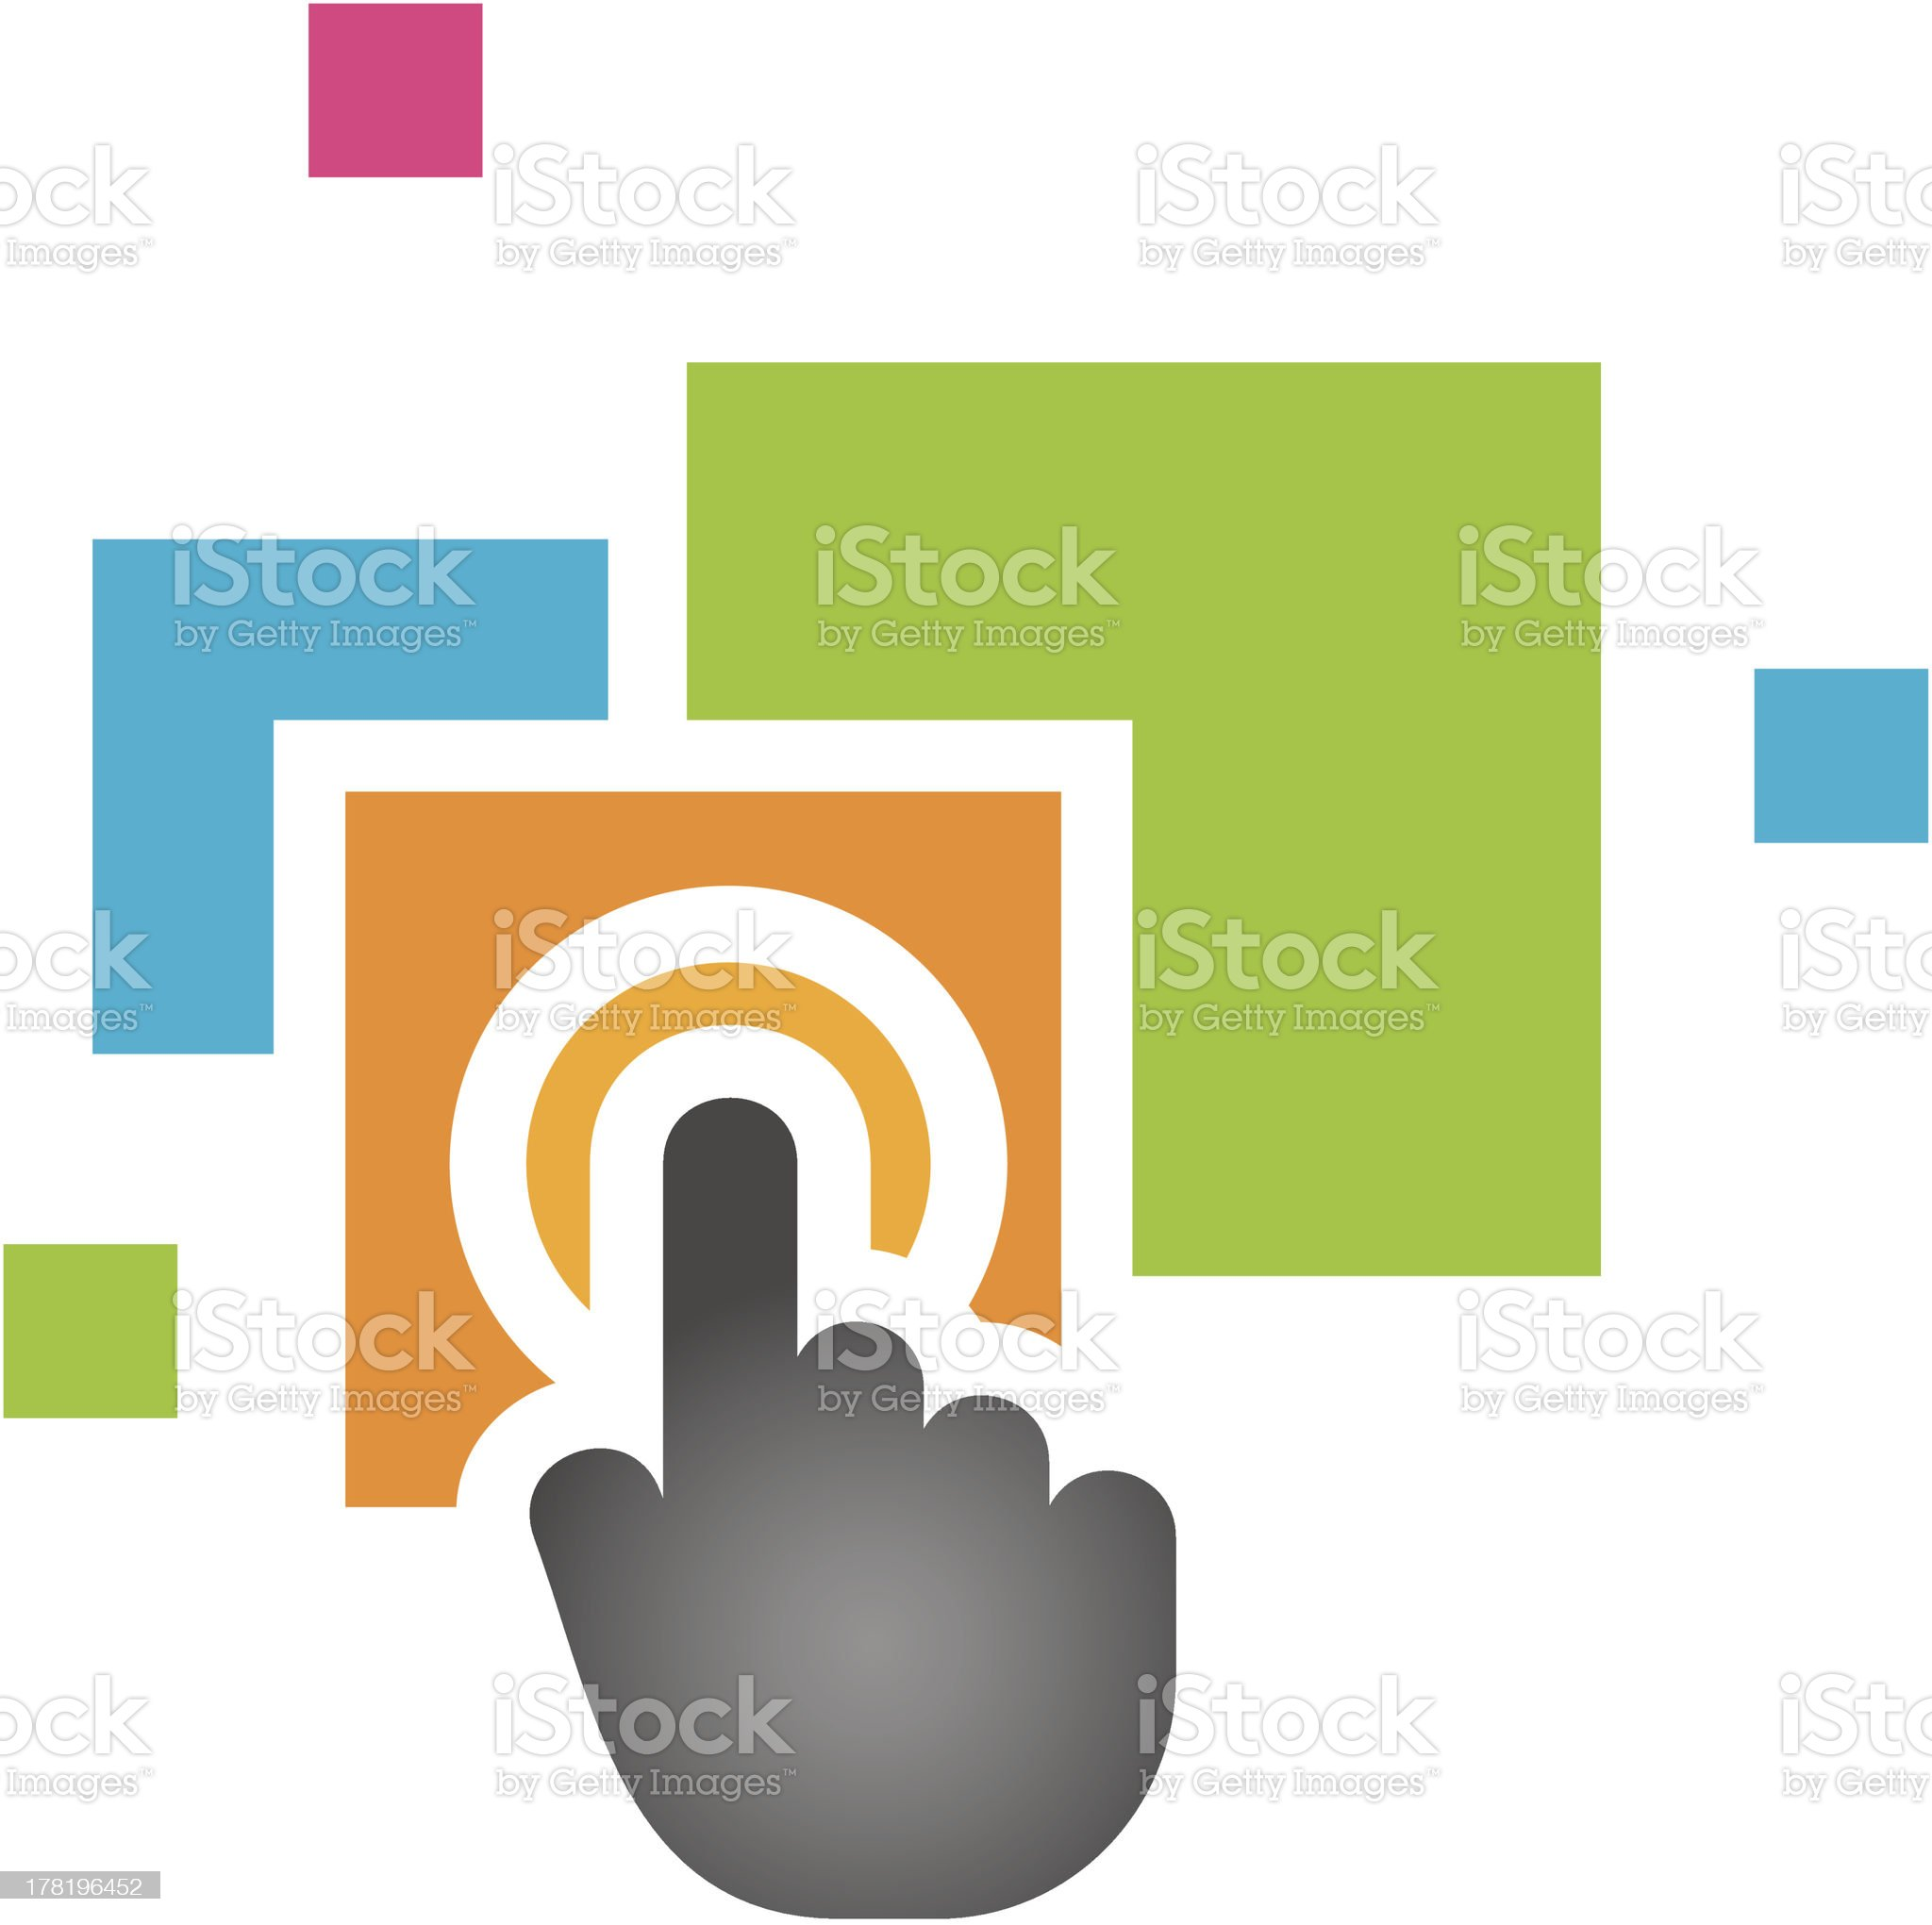 New colorful high tech application symbol and logo template royalty-free stock vector art